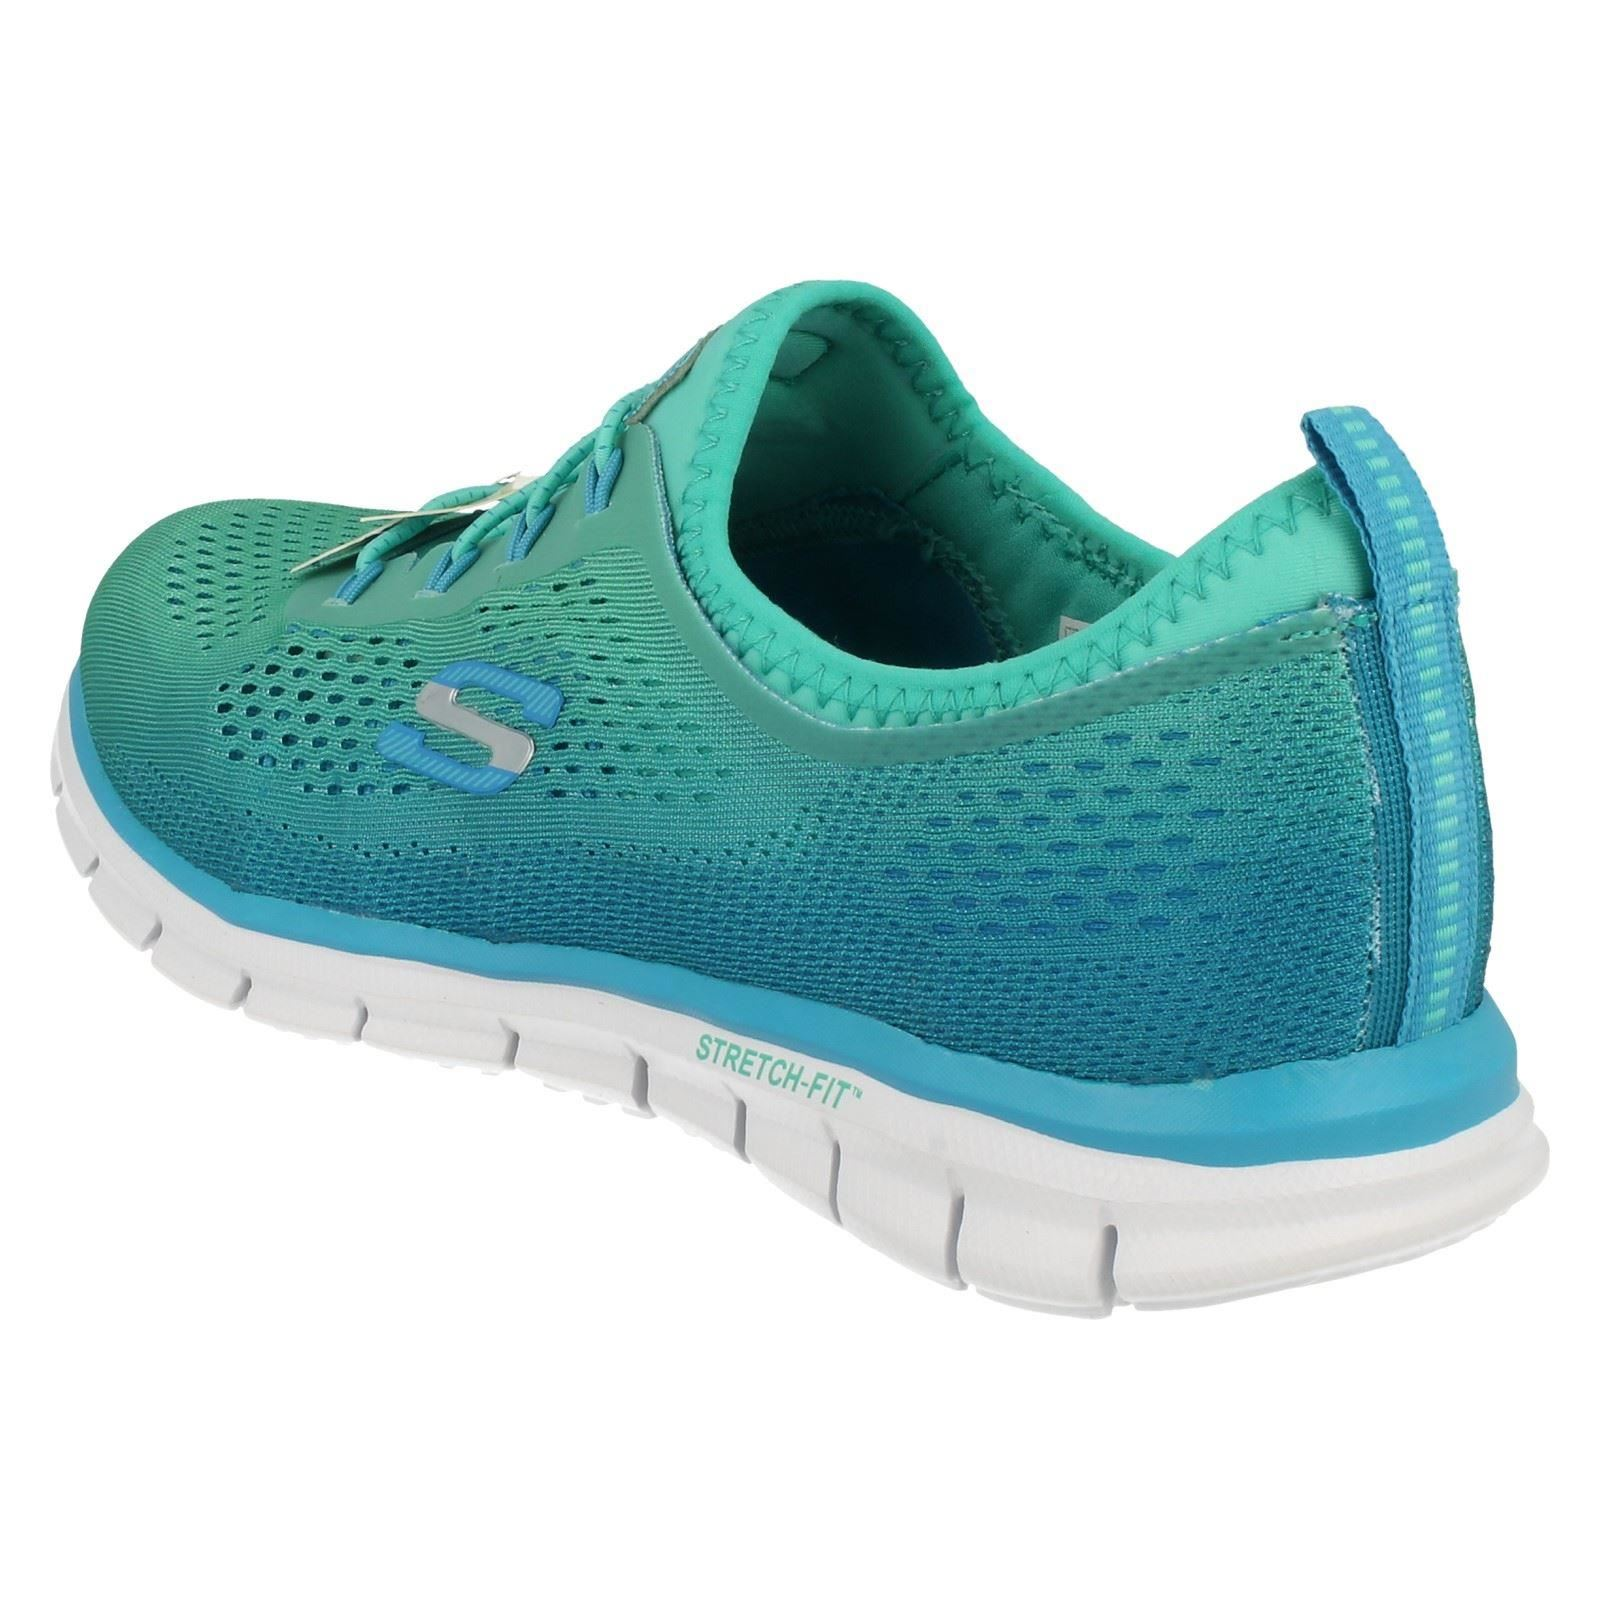 Skechers Air Cooled Memory Foam Precio